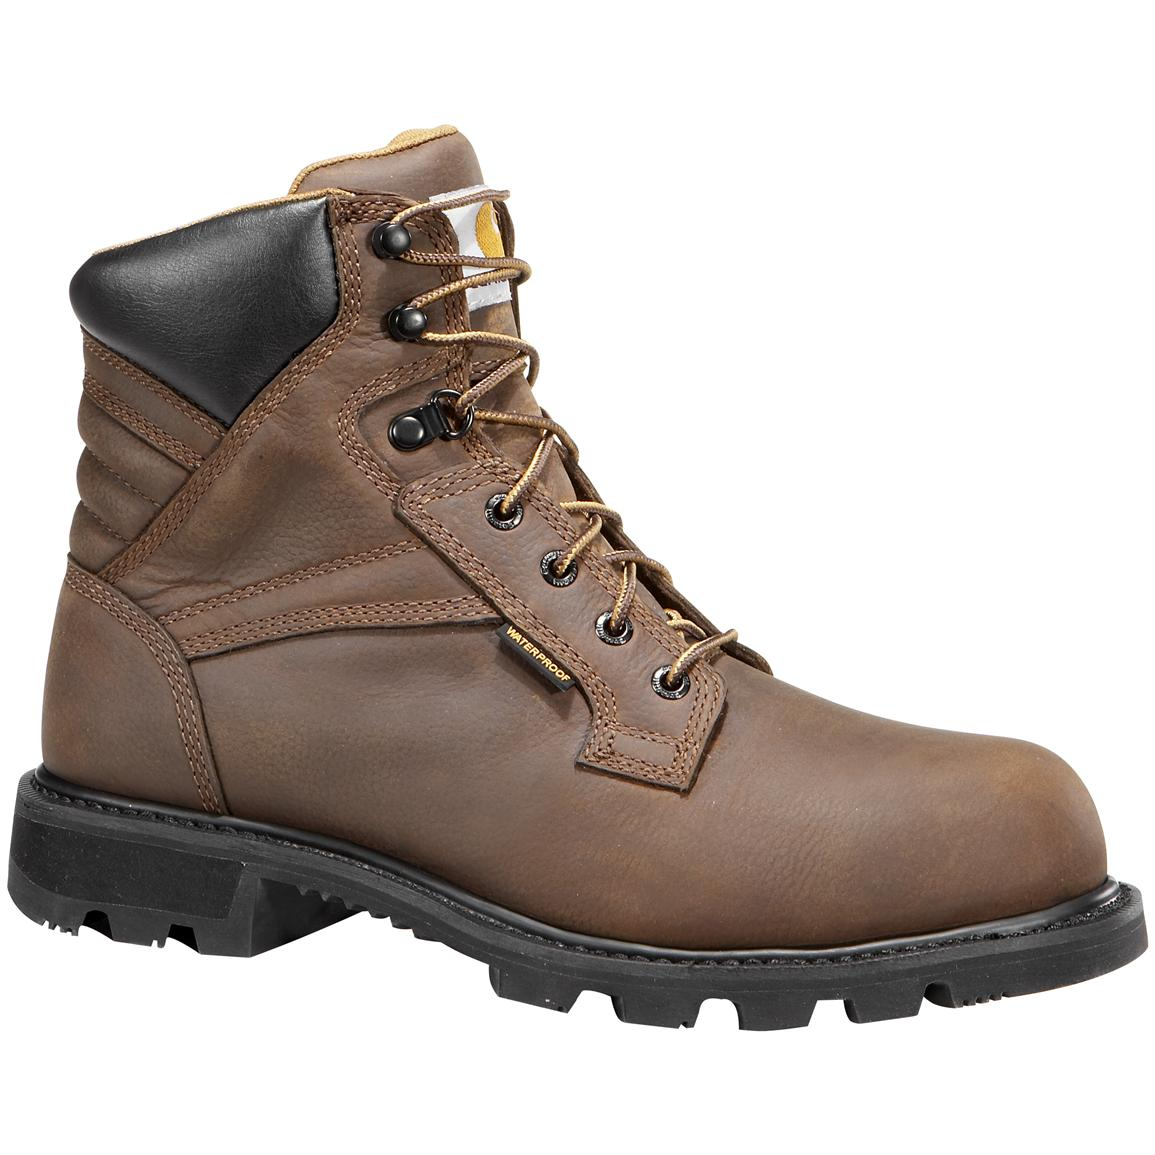 "Men's Carhartt® 6"" Waterproof Steel Toe Work Boots, Brown"